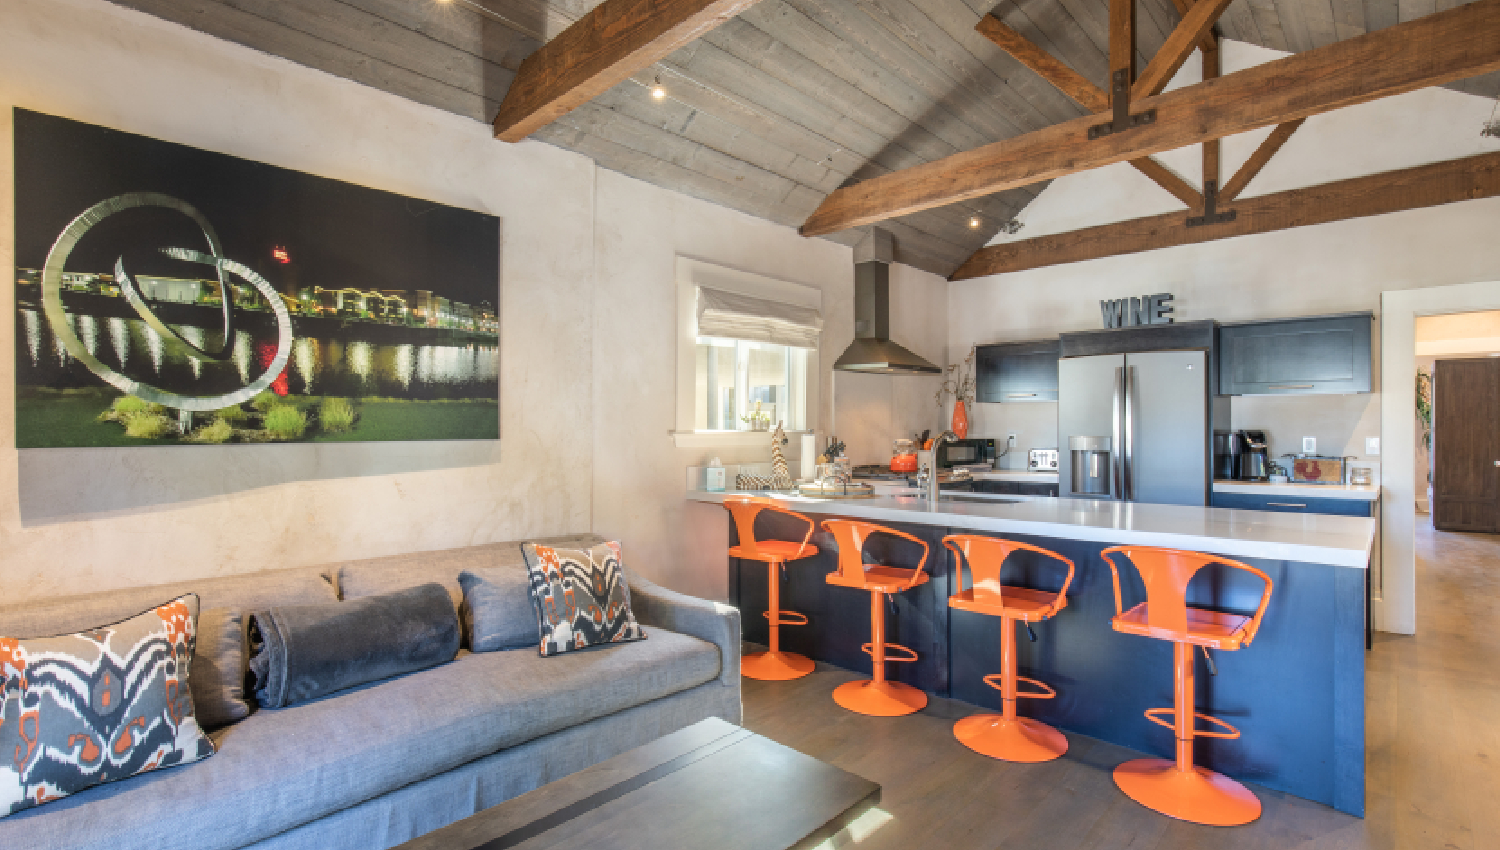 URBAN LUXURY WITHIN WALKING DISTANCE TO POPULAR NAPA ATTRACTIONS